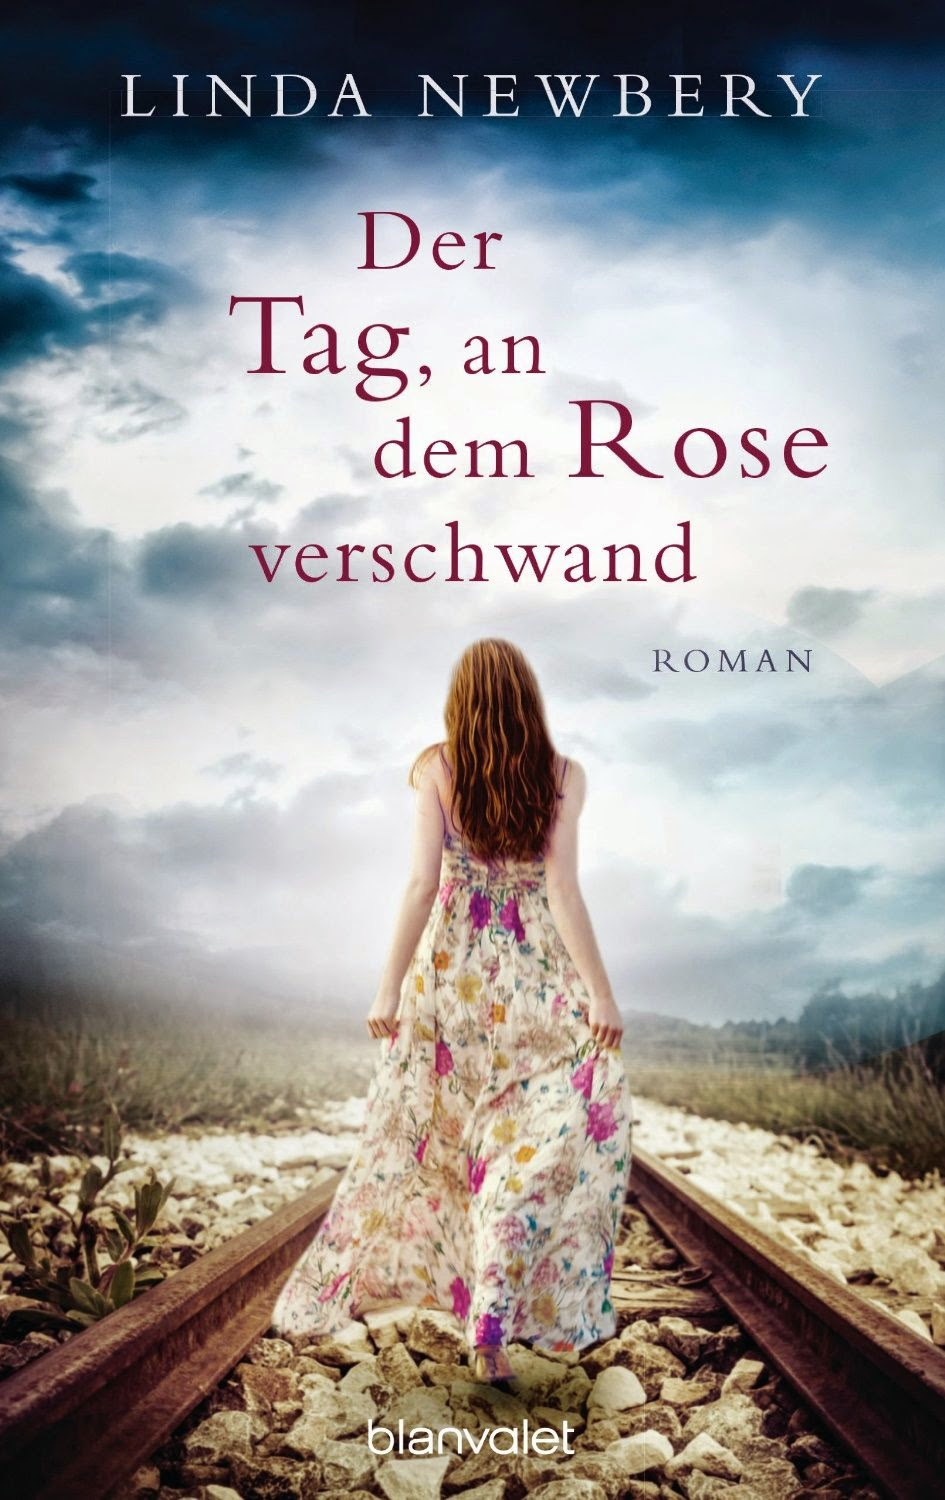 http://www.amazon.de/Tag-dem-Rose-verschwand-Roman-ebook/dp/B00KG63TIS/ref=sr_1_1?s=books&ie=UTF8&qid=1420271481&sr=1-1&keywords=der+tag+an+dem+rose+verschwand